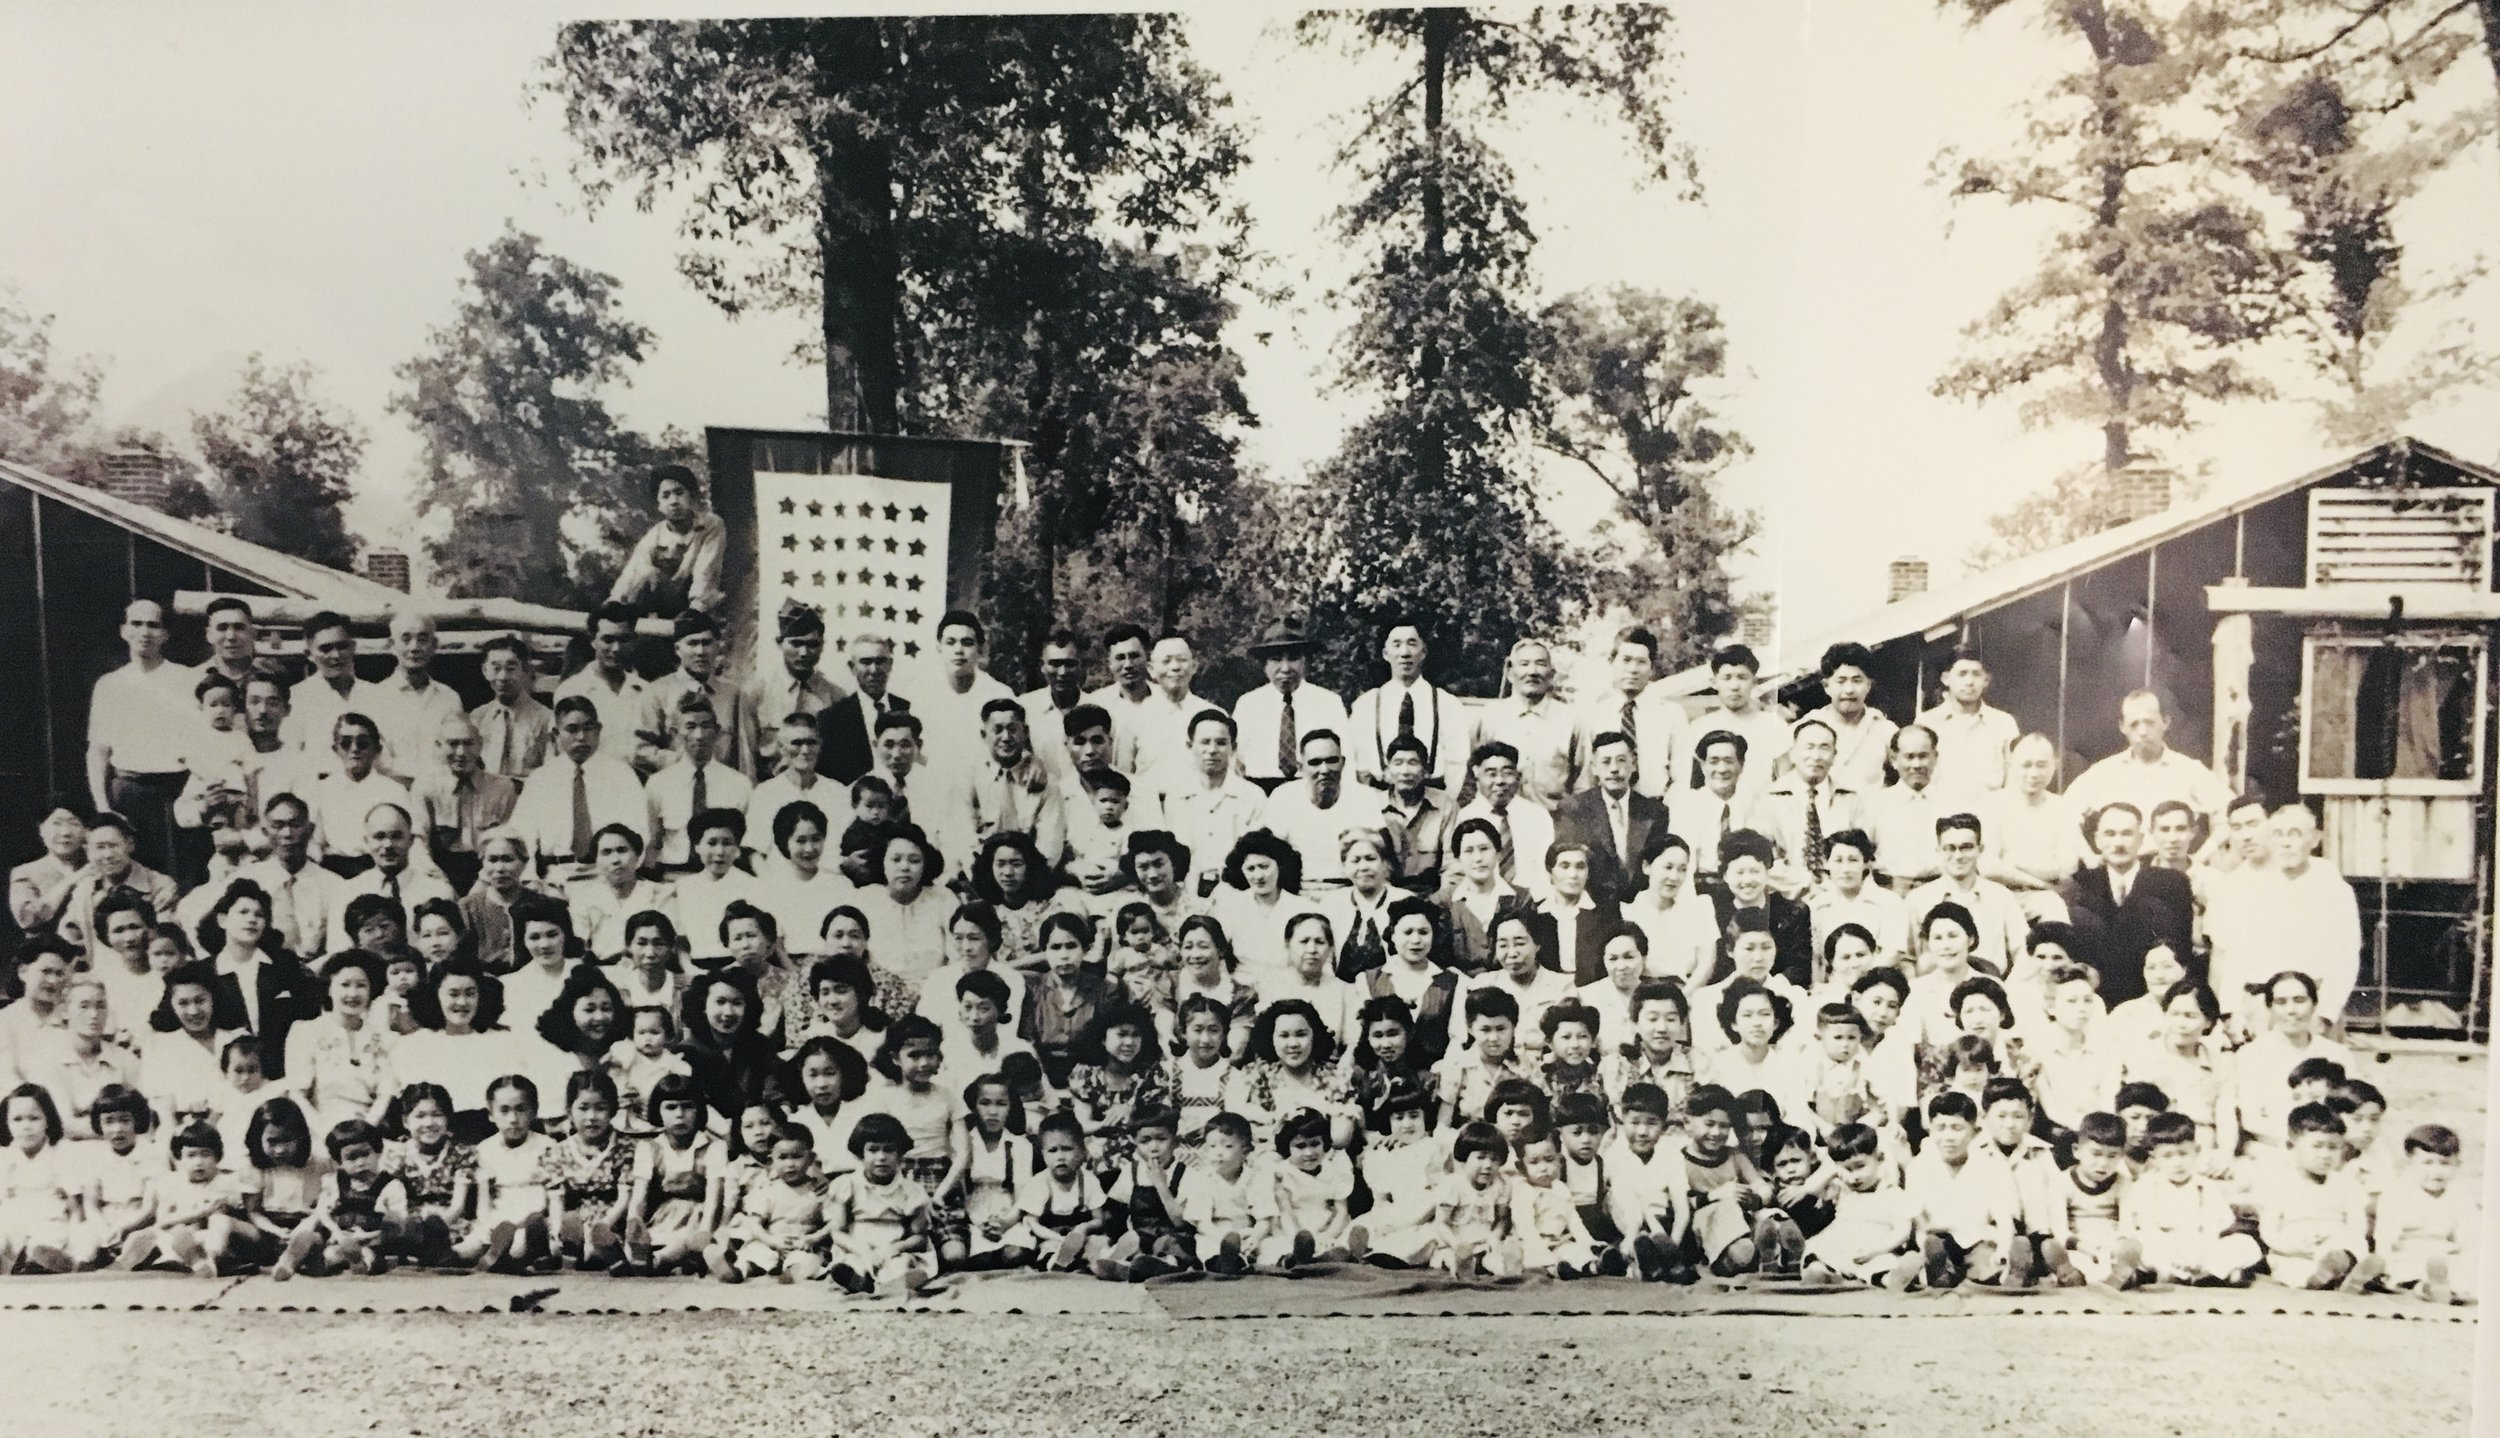 Rohwer Block 7 residents (all were primarily from Los Angeles), including two 442nd RCT soldiers visiting from Camp Shelby (top row, seventh and eighth from left). Roy's whole family is also in this photo. Date: April 15, 1944